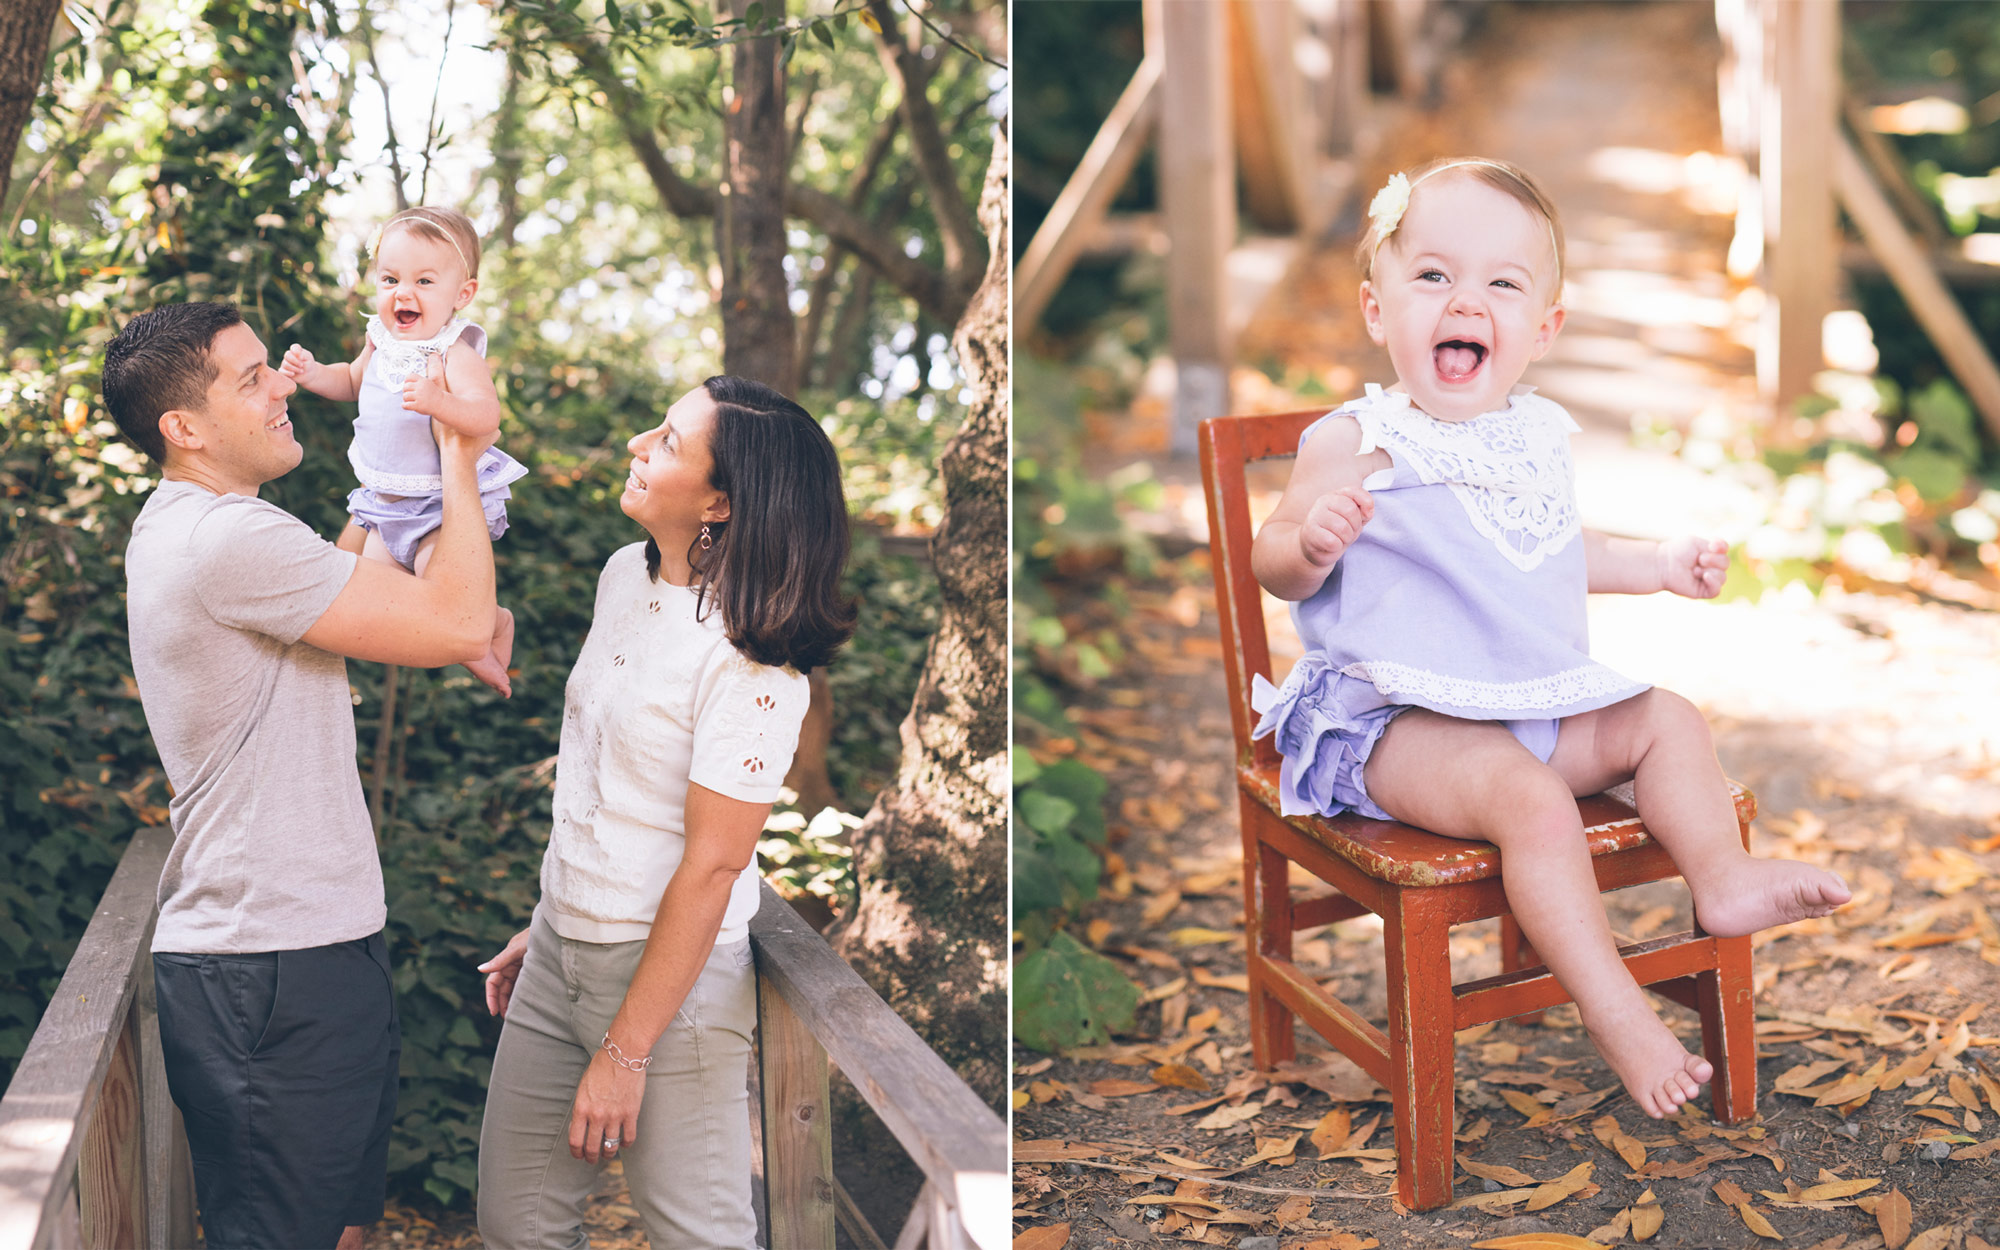 family-portraits-from-a-photo-session-in-berkeley.jpg